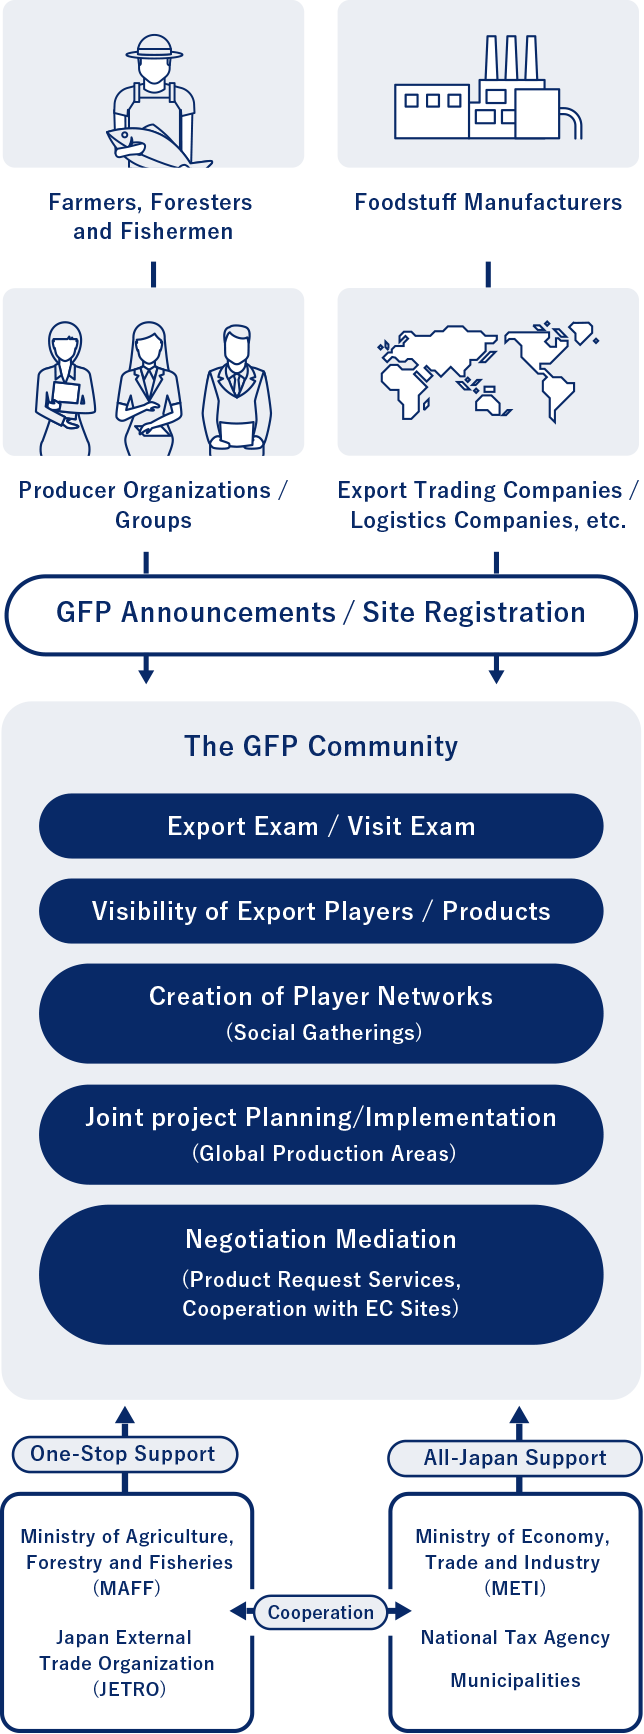 The GFP Community